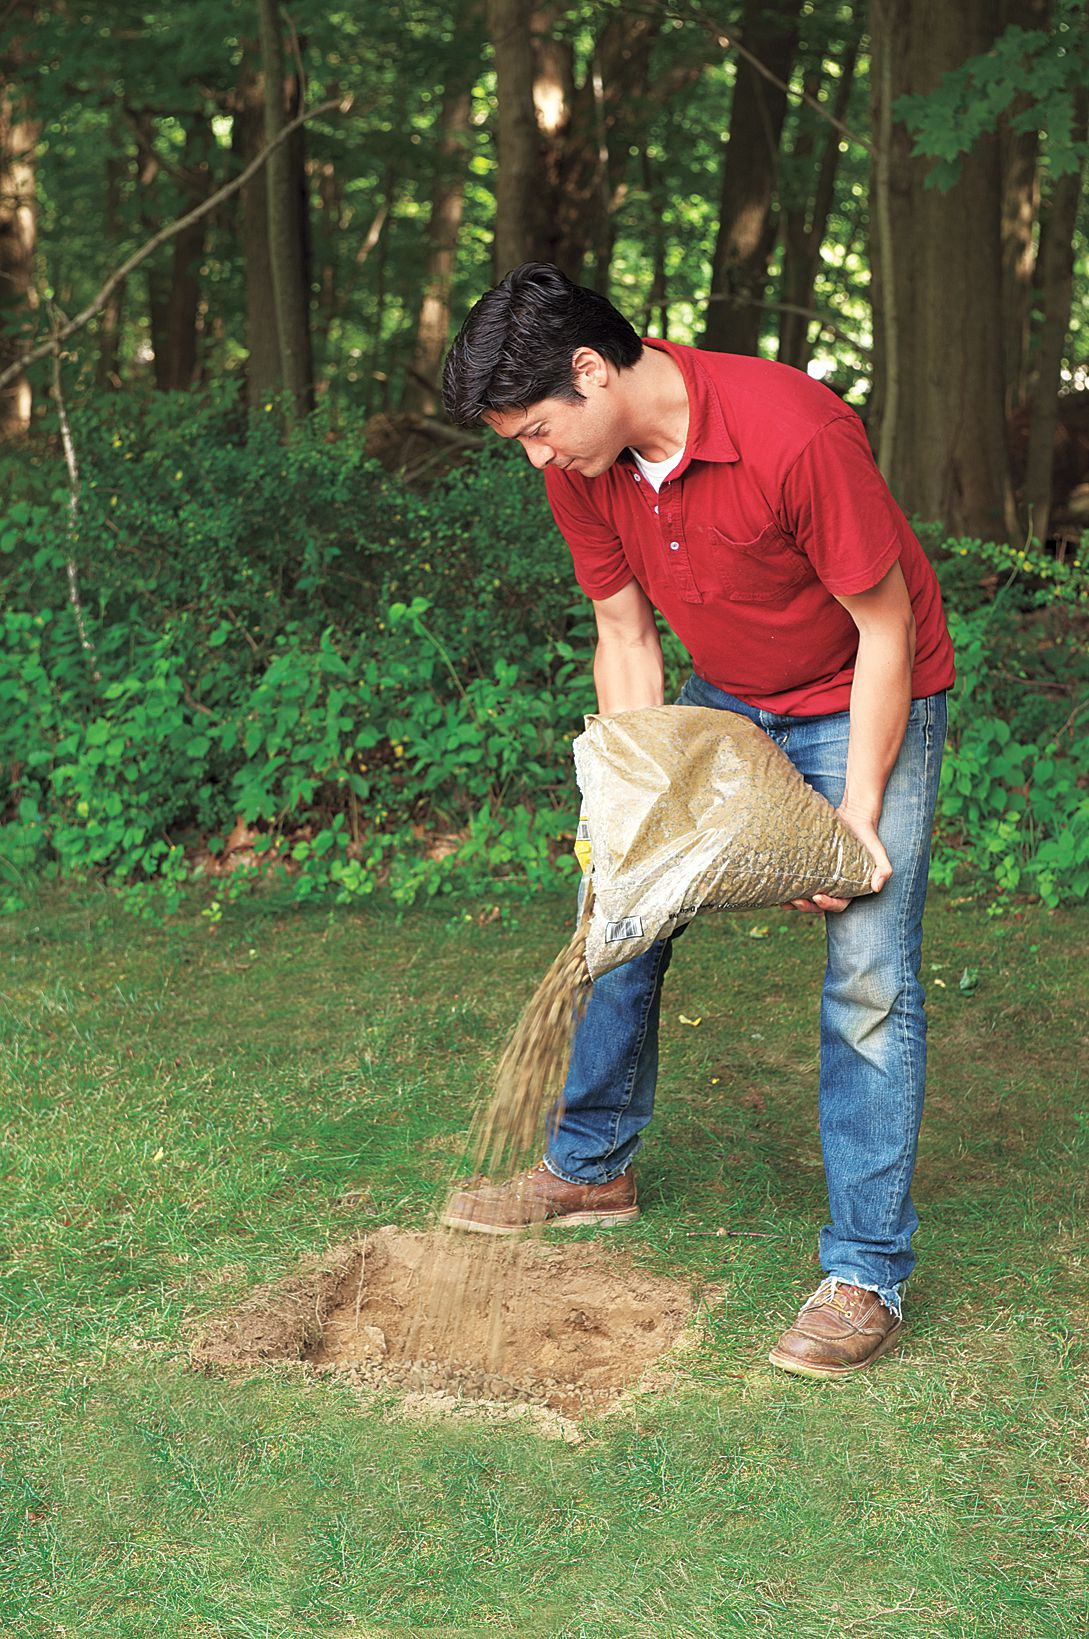 Man Adds Gravel Into Base For Planter Bench